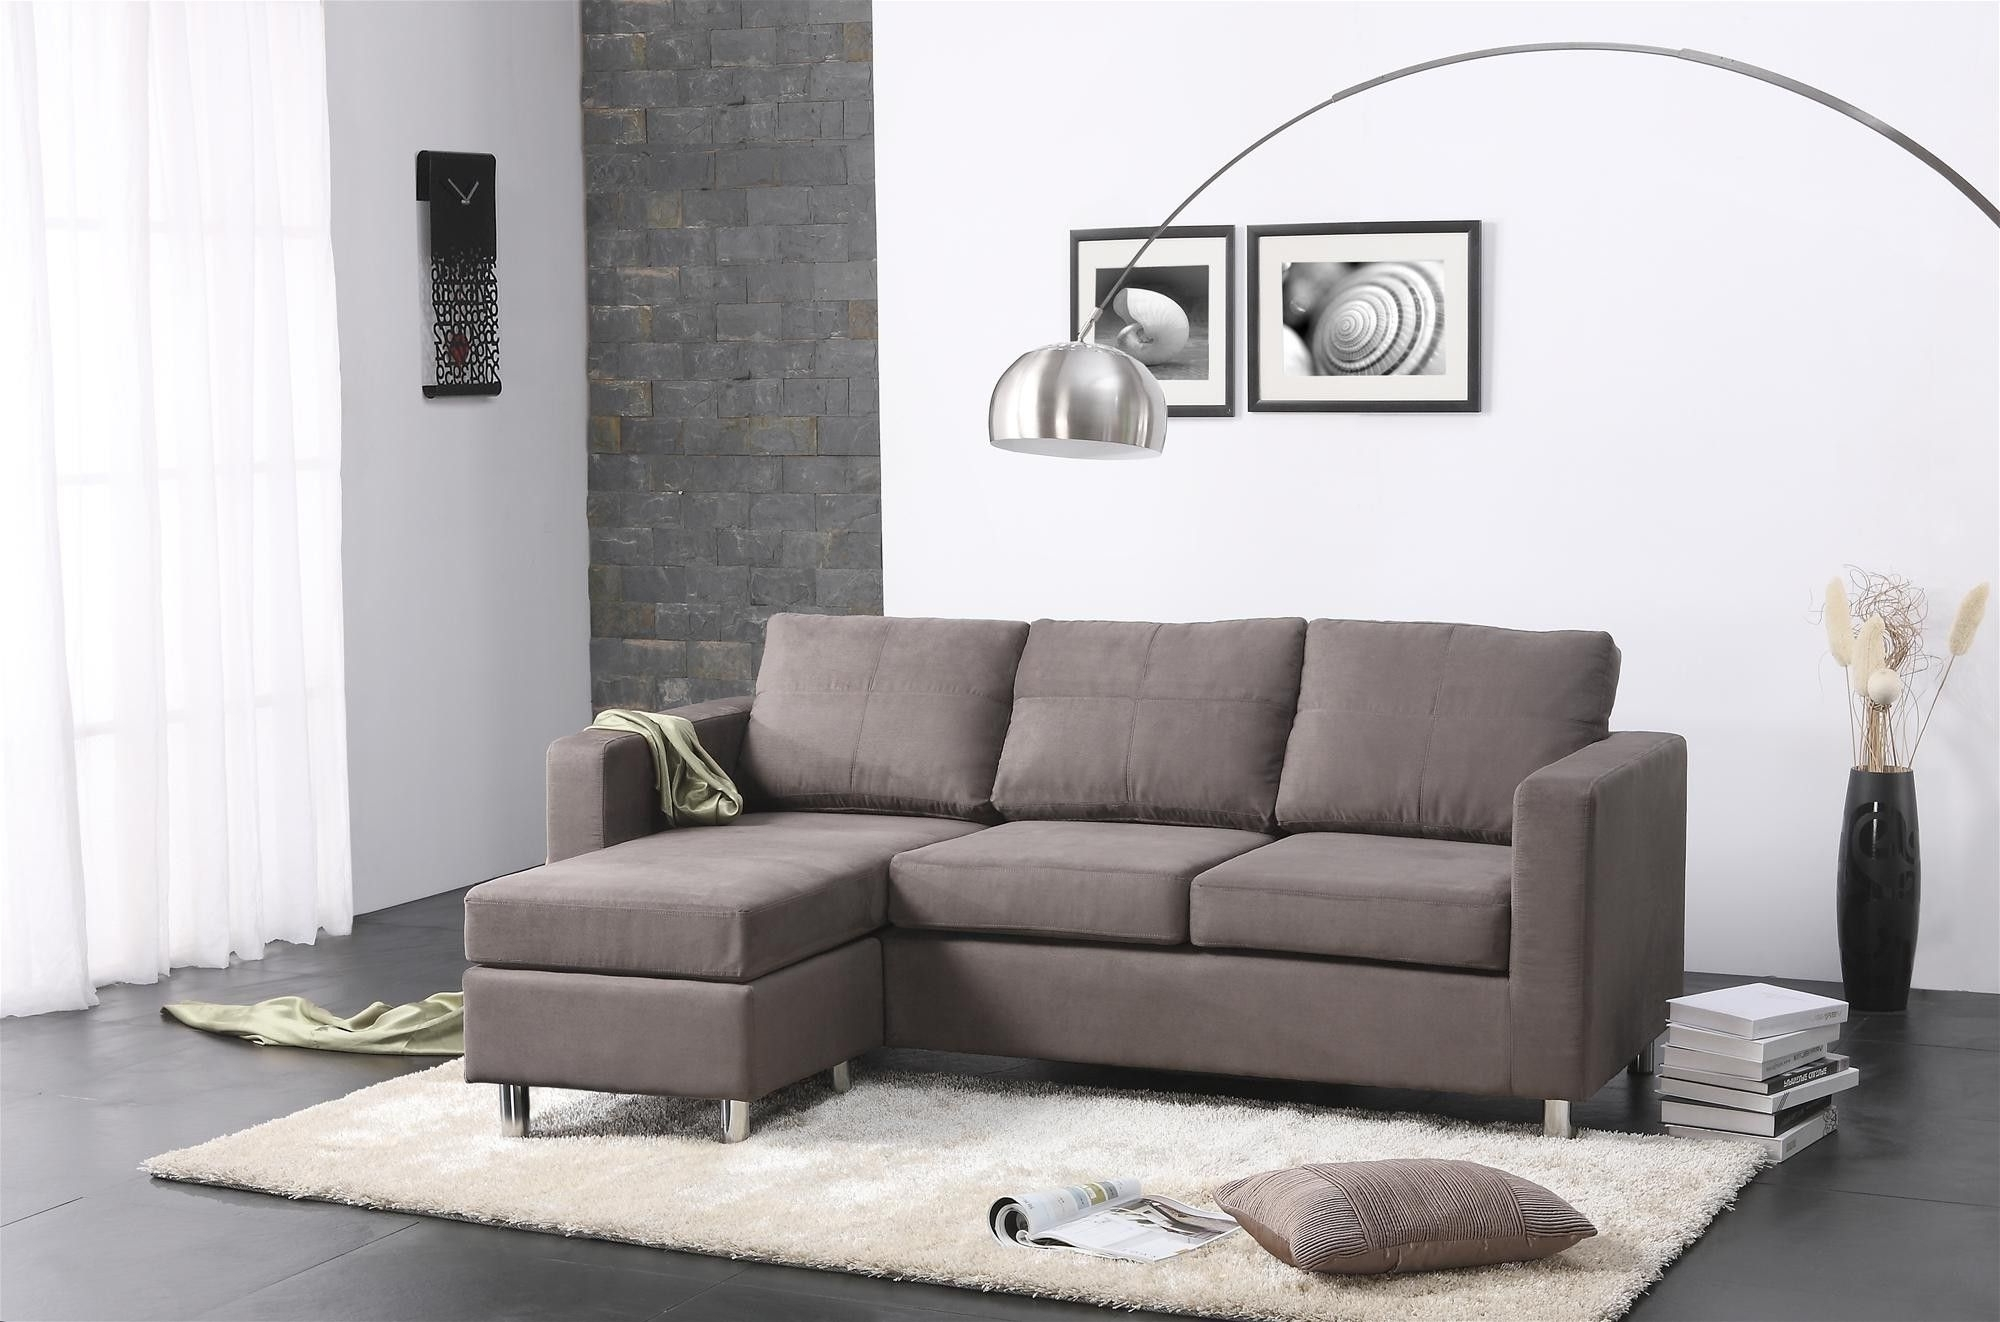 Well Known Chaise Lounge Chairs For Small Spaces For Amazing Modern Small Spaces Living Room Decors With Grey Sectional (View 13 of 15)